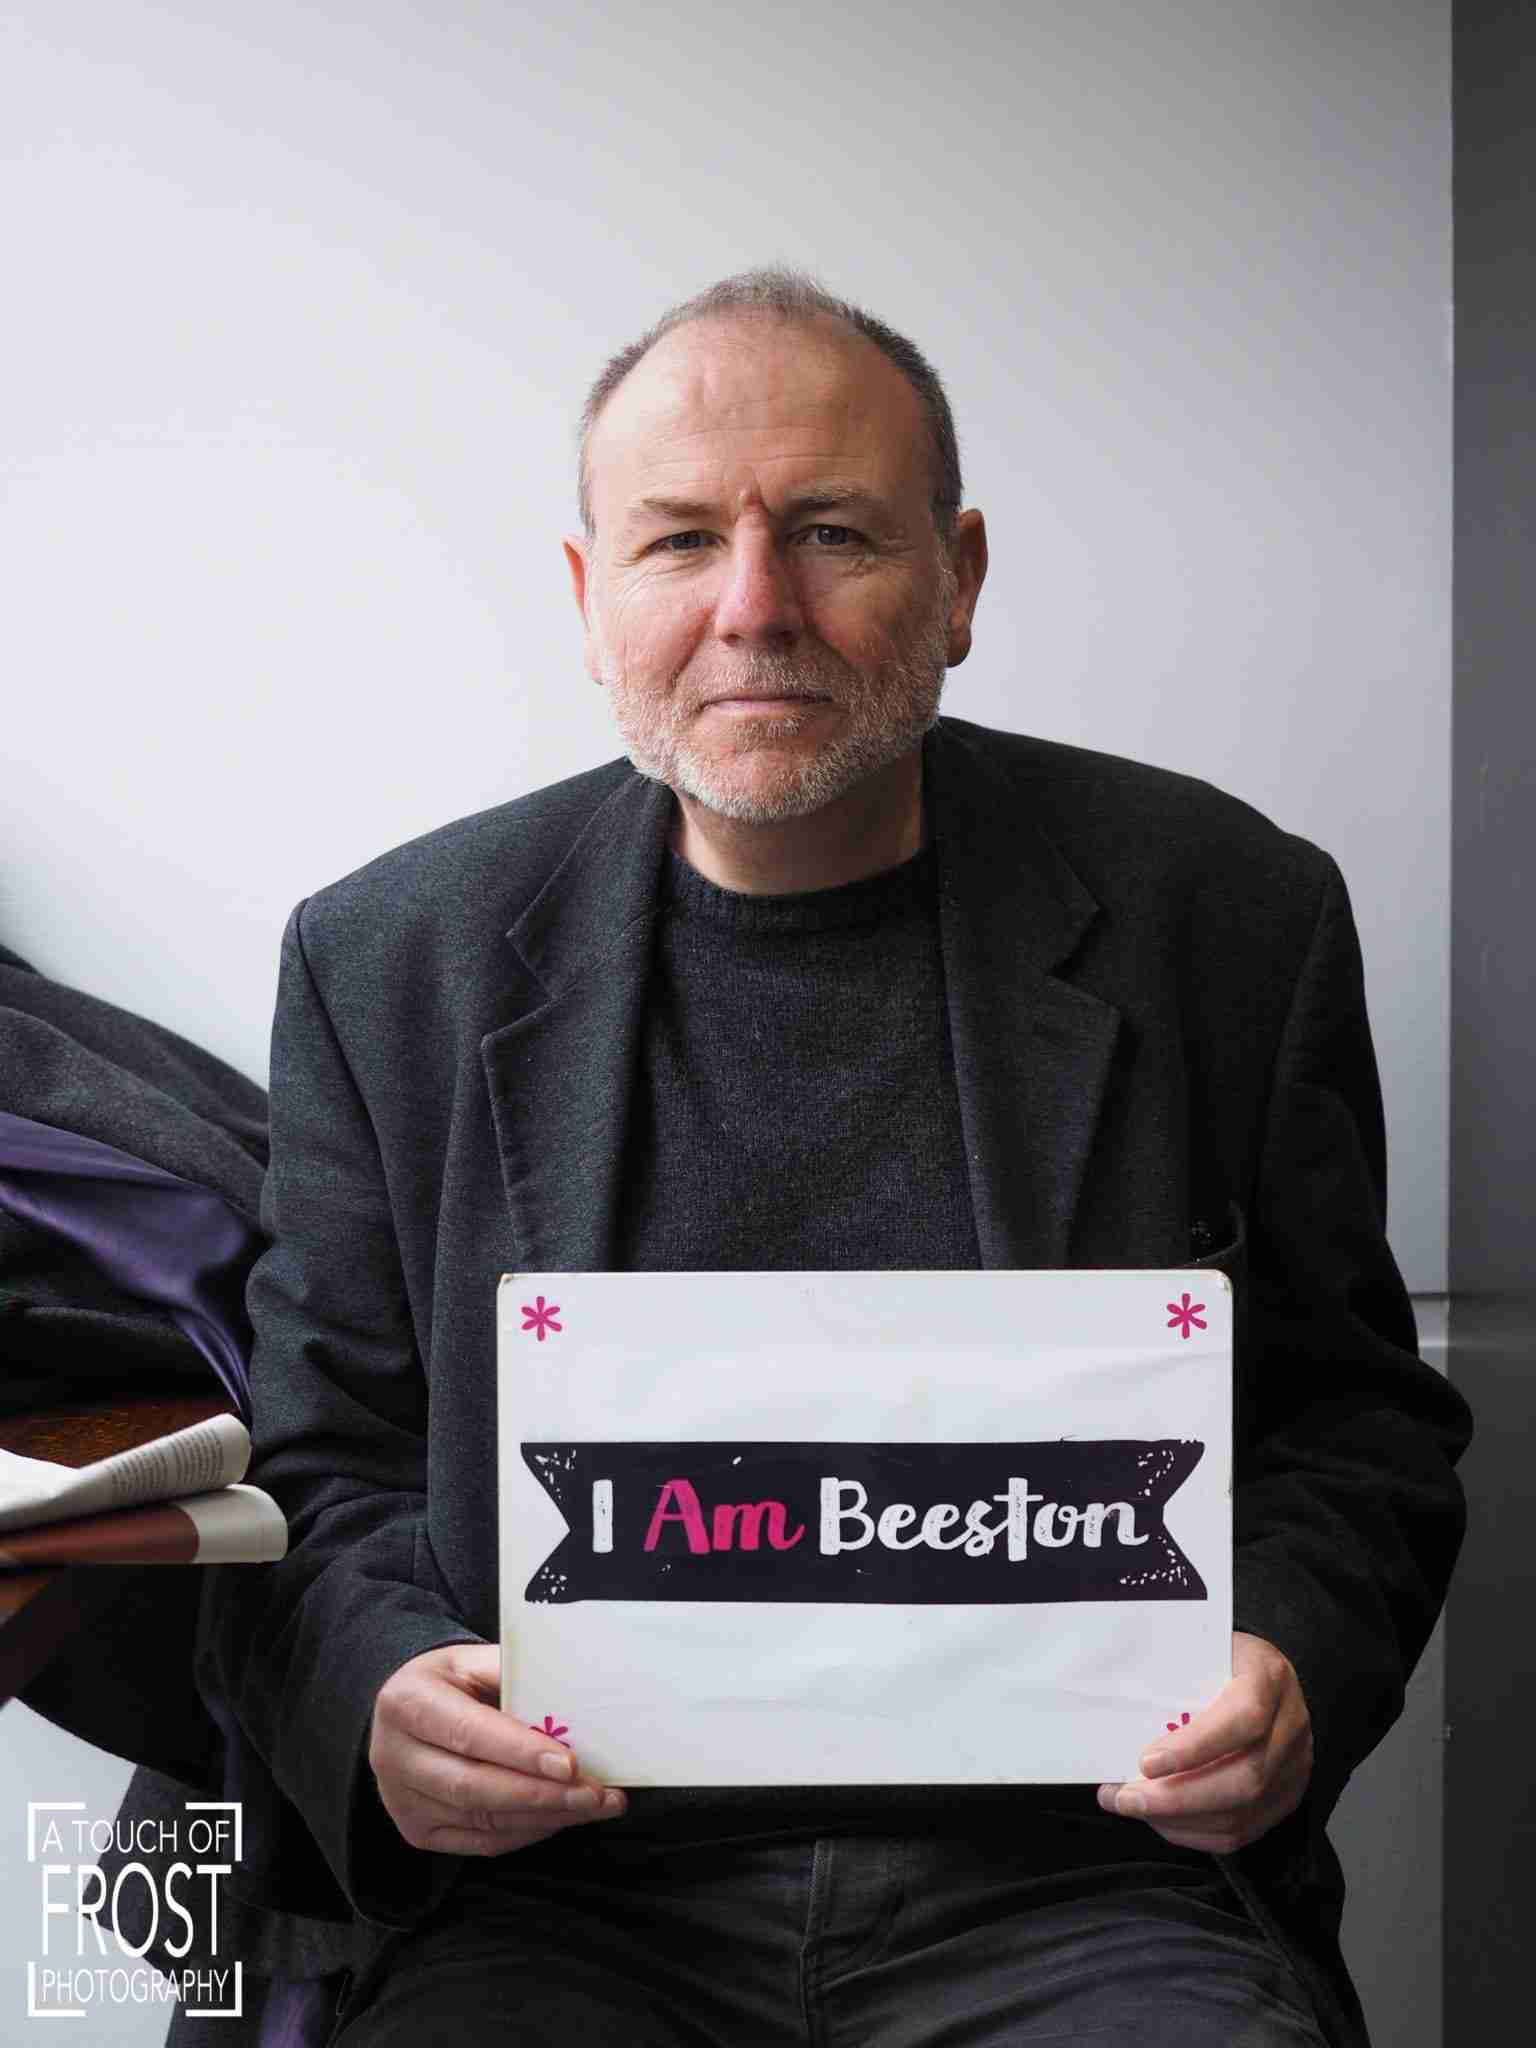 I Am Beeston: Graham Caveney, author